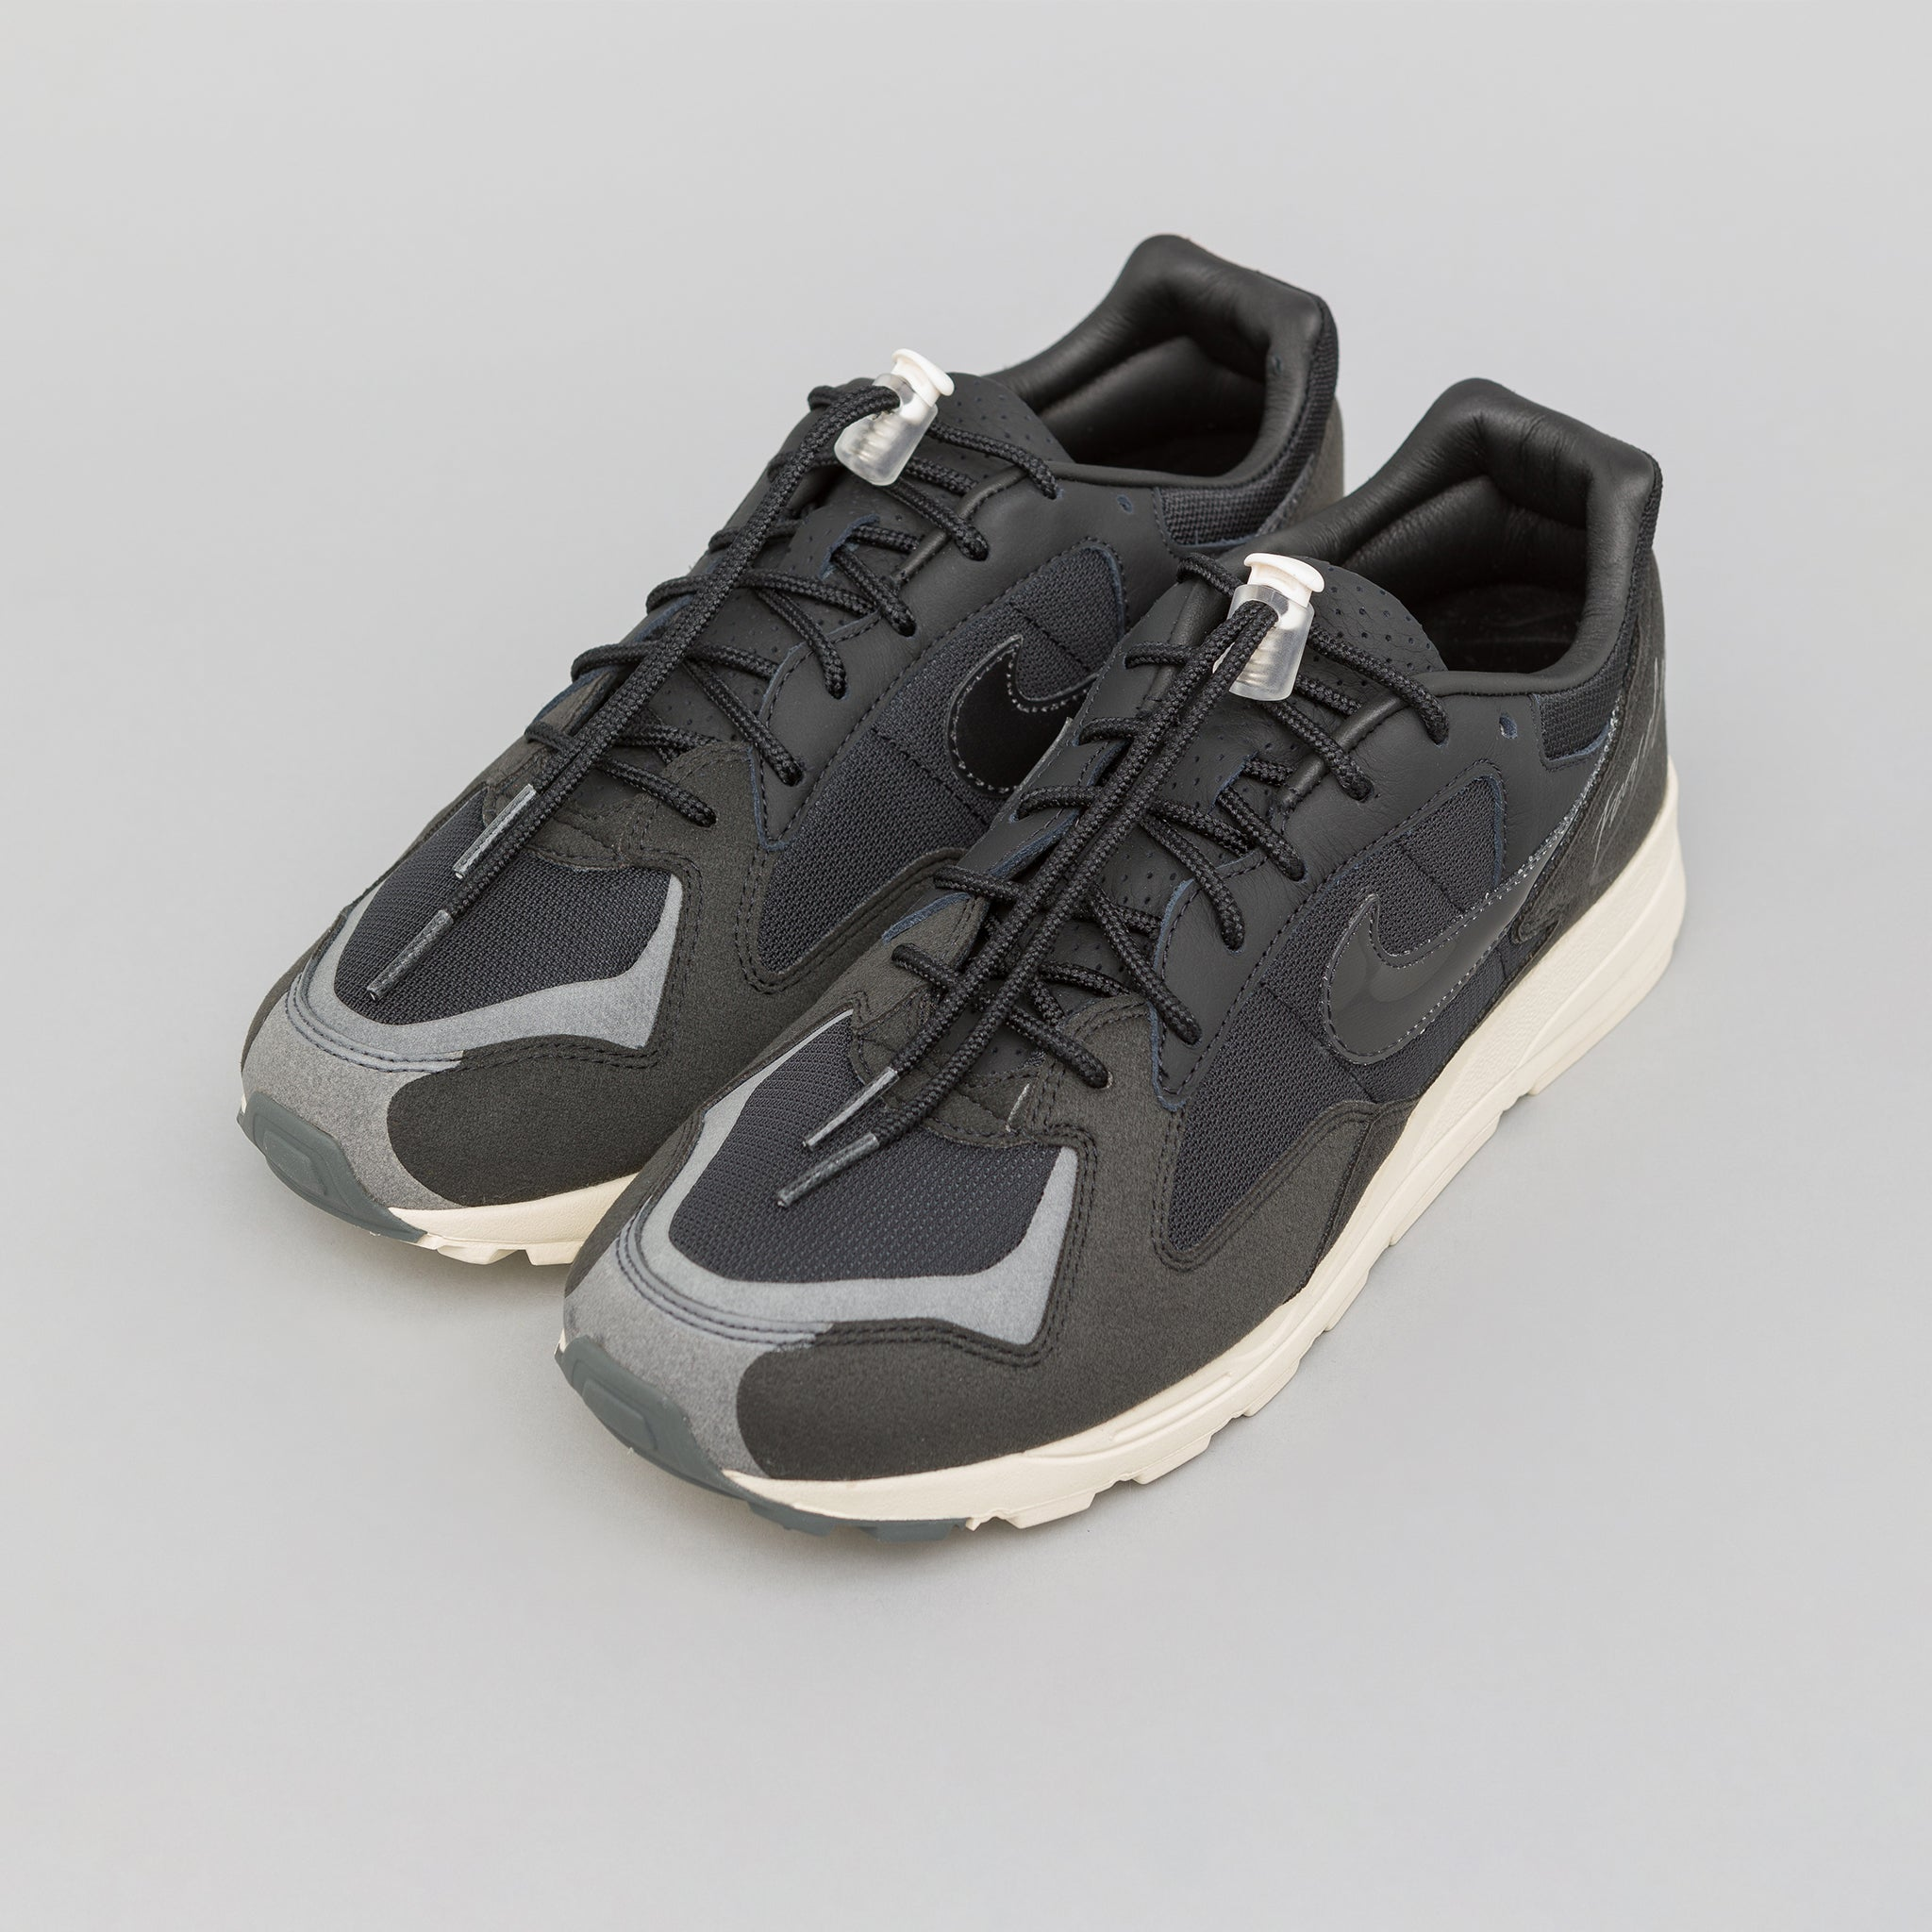 x Fear of God Air Skylon II in Black